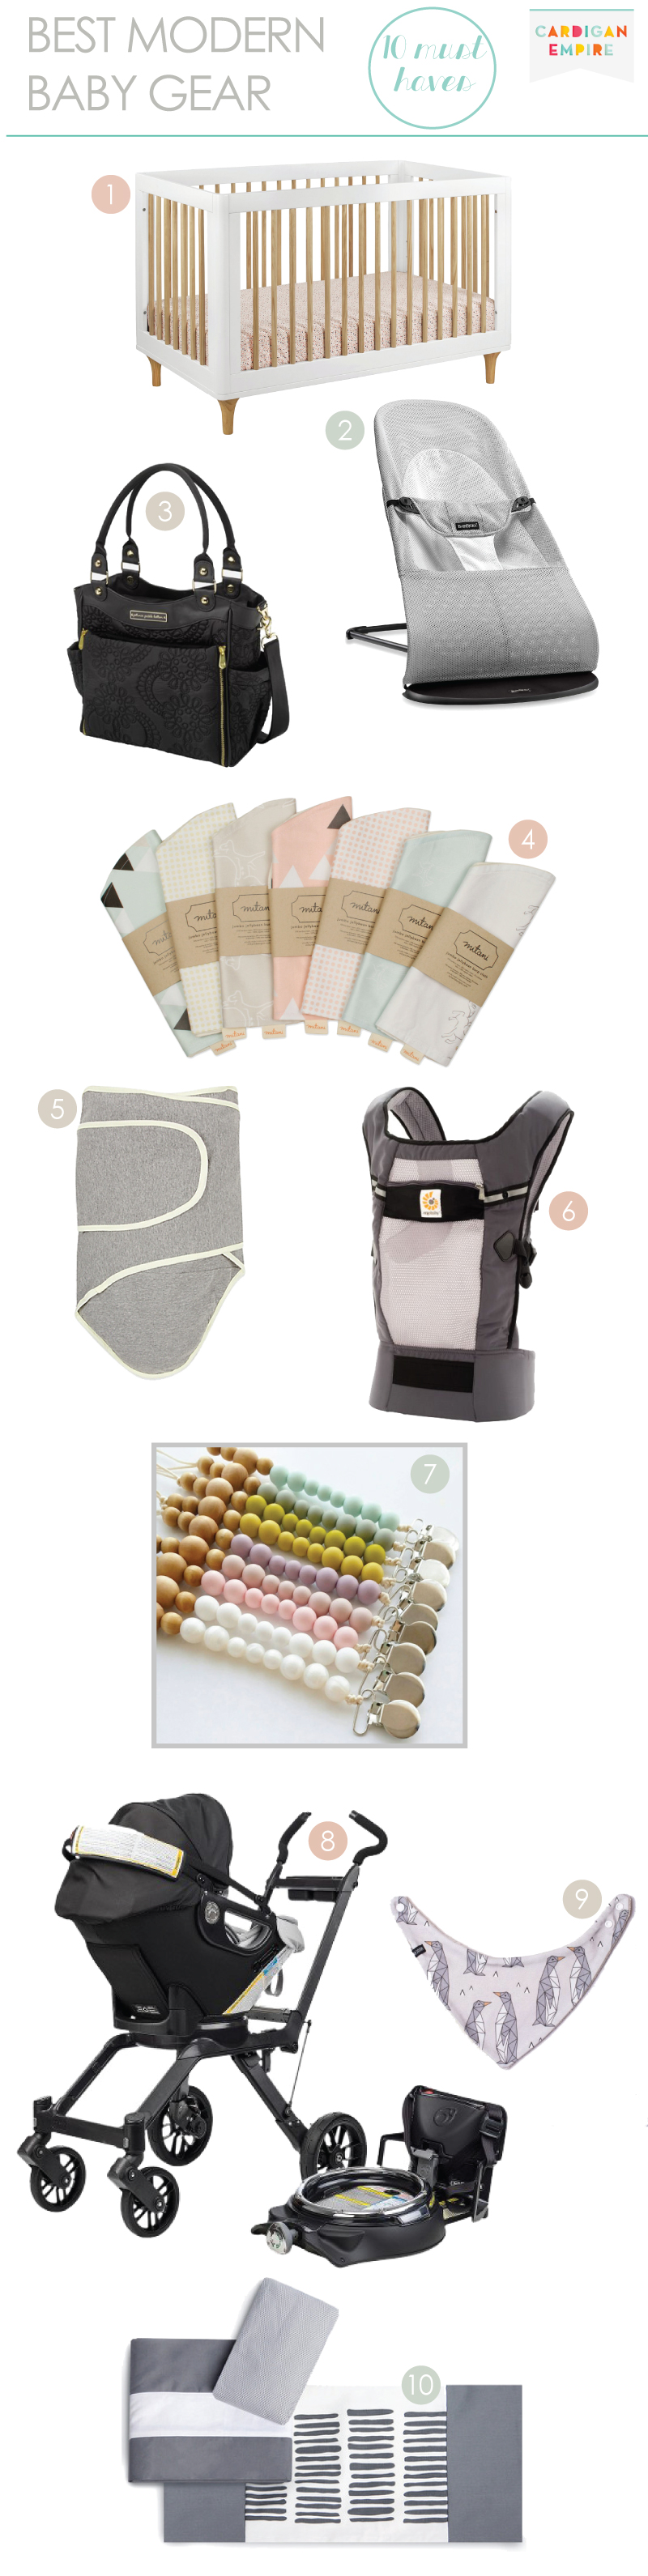 modern baby gear trendy baby gearpngfit trendy baby  - must have modern baby gear recommendations